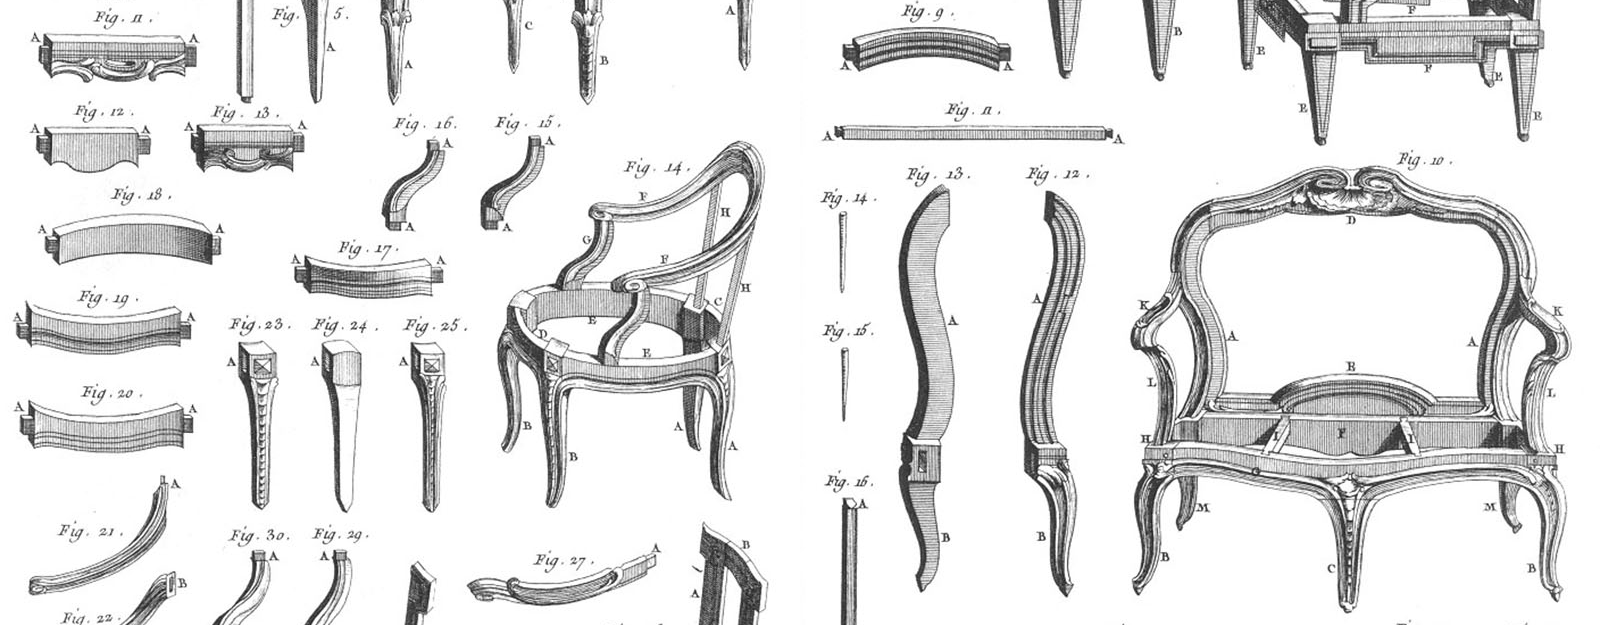 Stupendous Furniture Design Reference Diagrams Of 18Th Century Andrewgaddart Wooden Chair Designs For Living Room Andrewgaddartcom